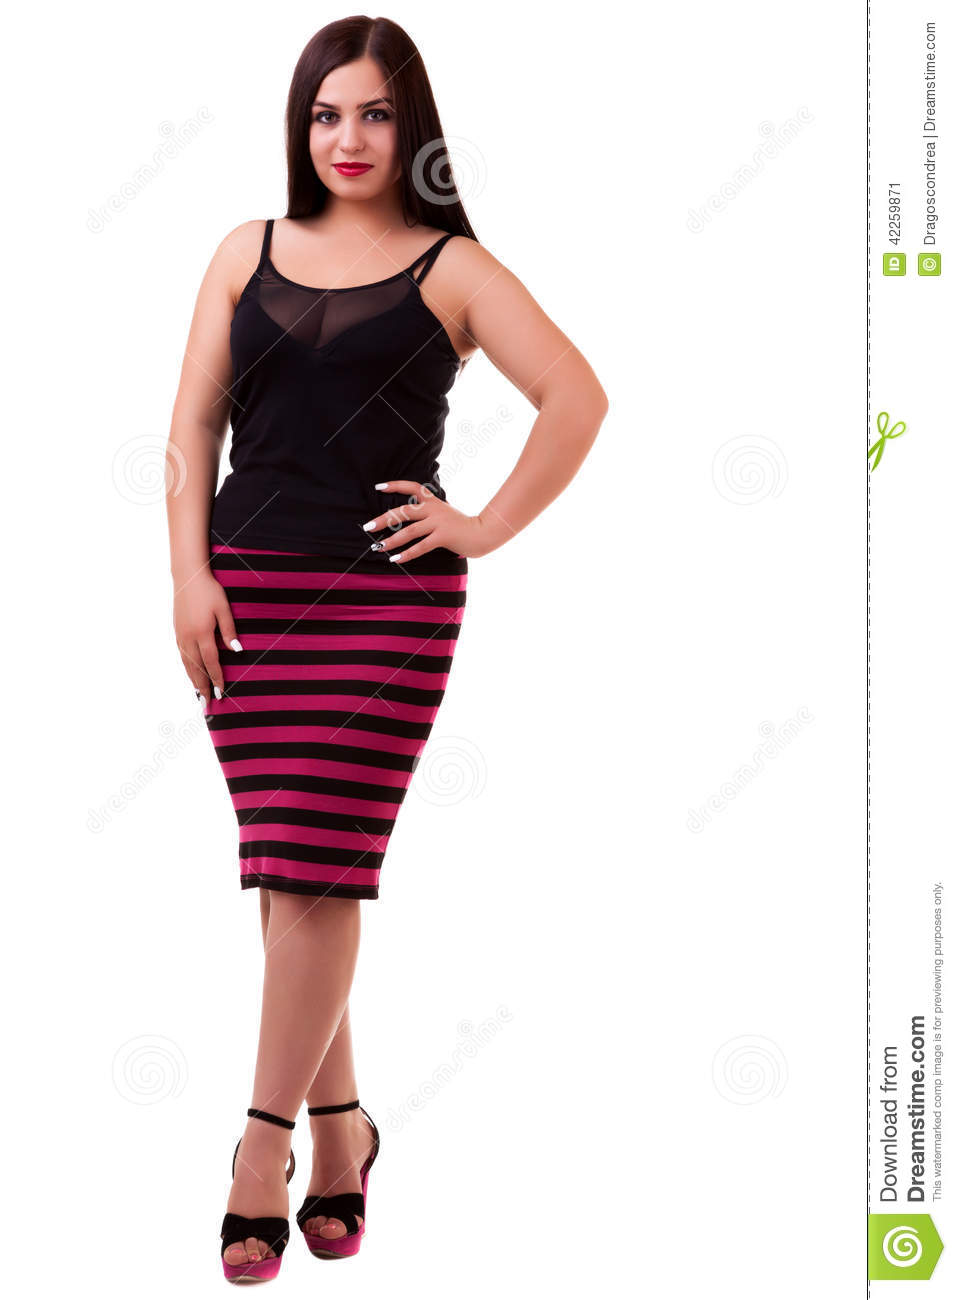 Woman Over White Background Full Body Stock Photo - Image ...